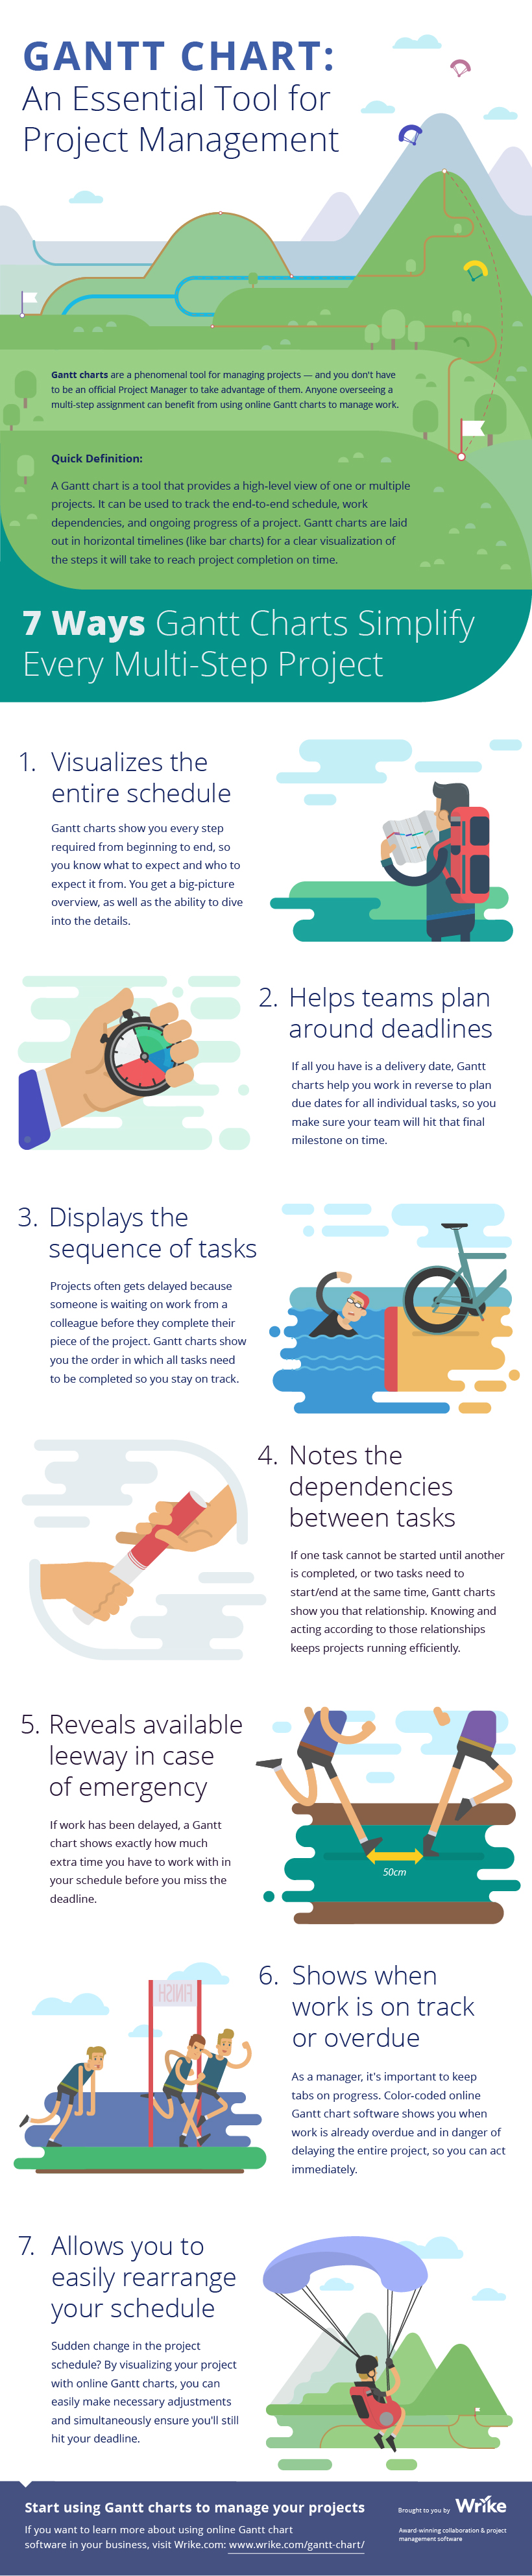 Gantt Chart Software: A Key Tool For Project Management (#Infographic)